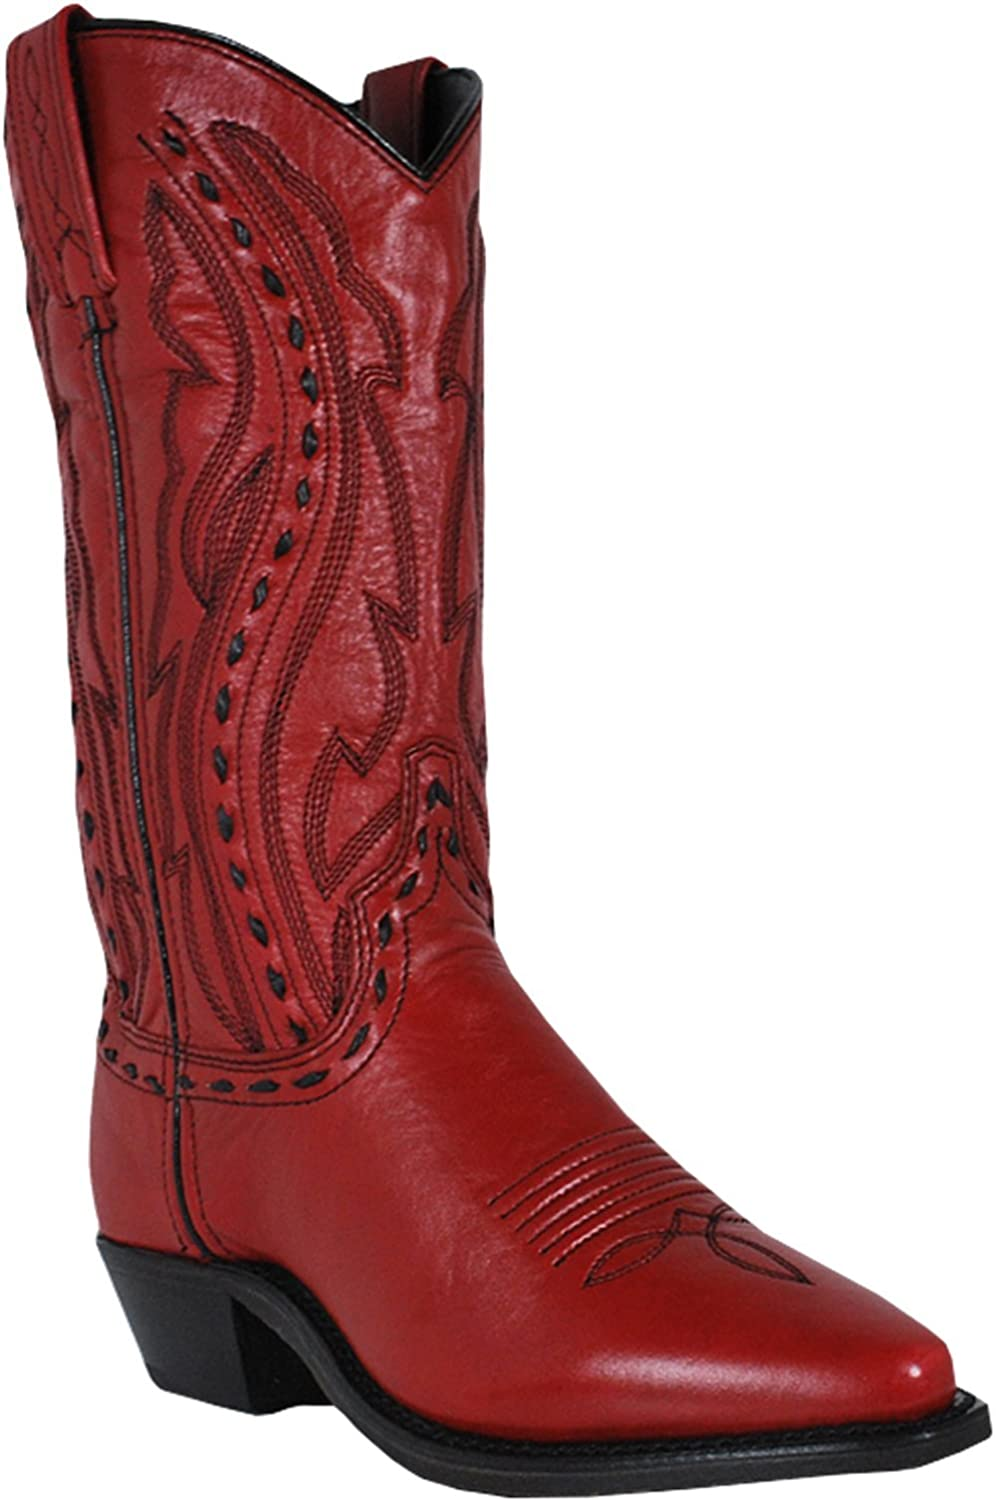 Abilene Women's Whipstitched Cowgirl Boot - 9002 B00XC6C2M8 6 B(M) US|Red